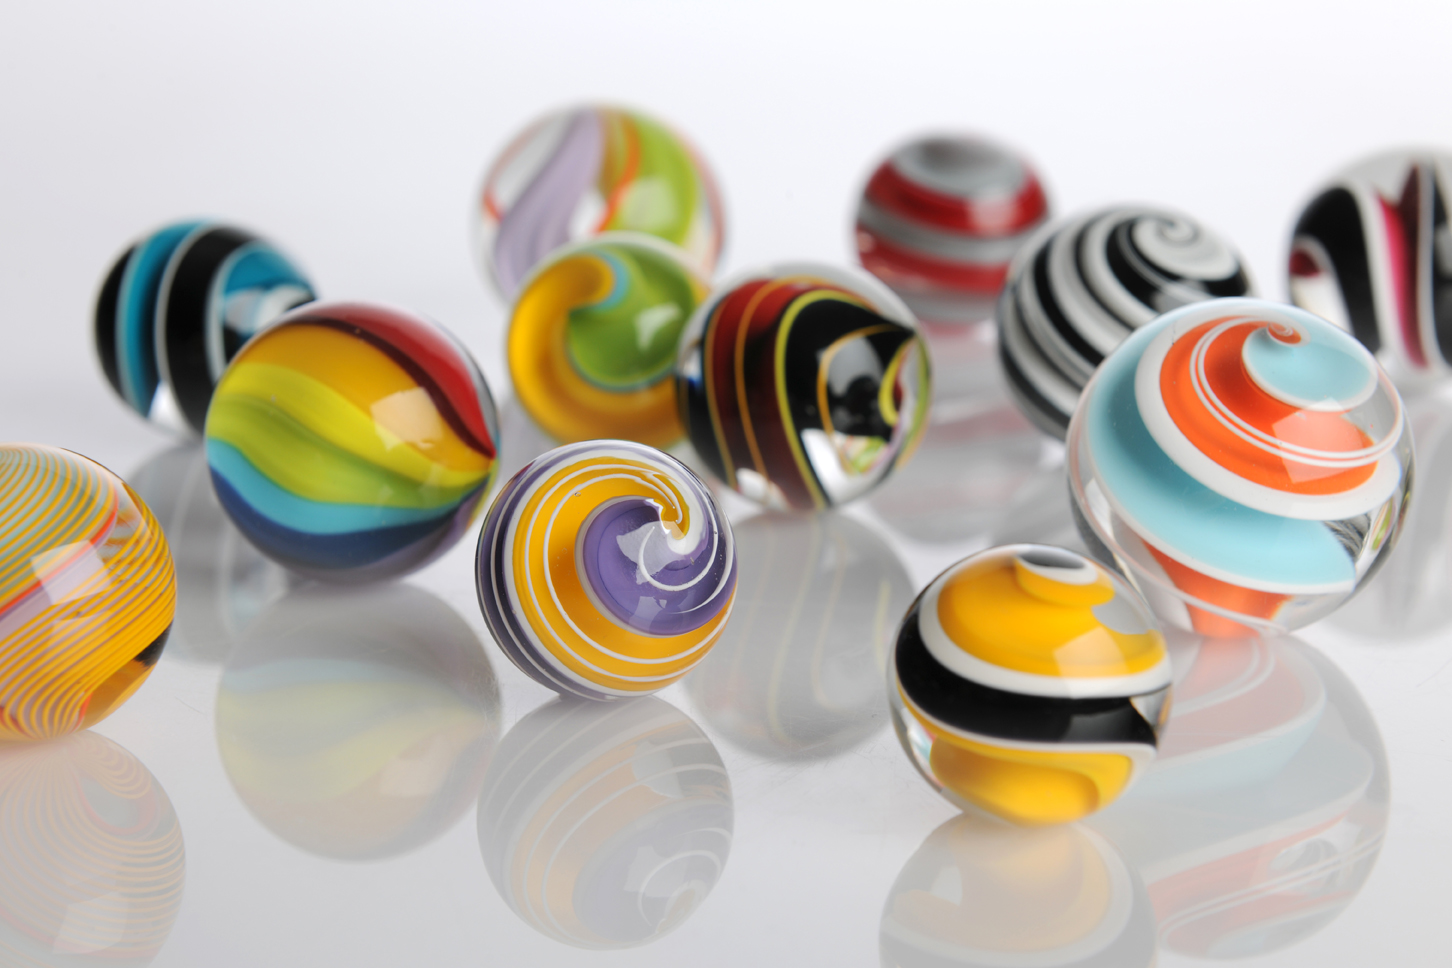 Marble Merchants For The Love Of Marbles